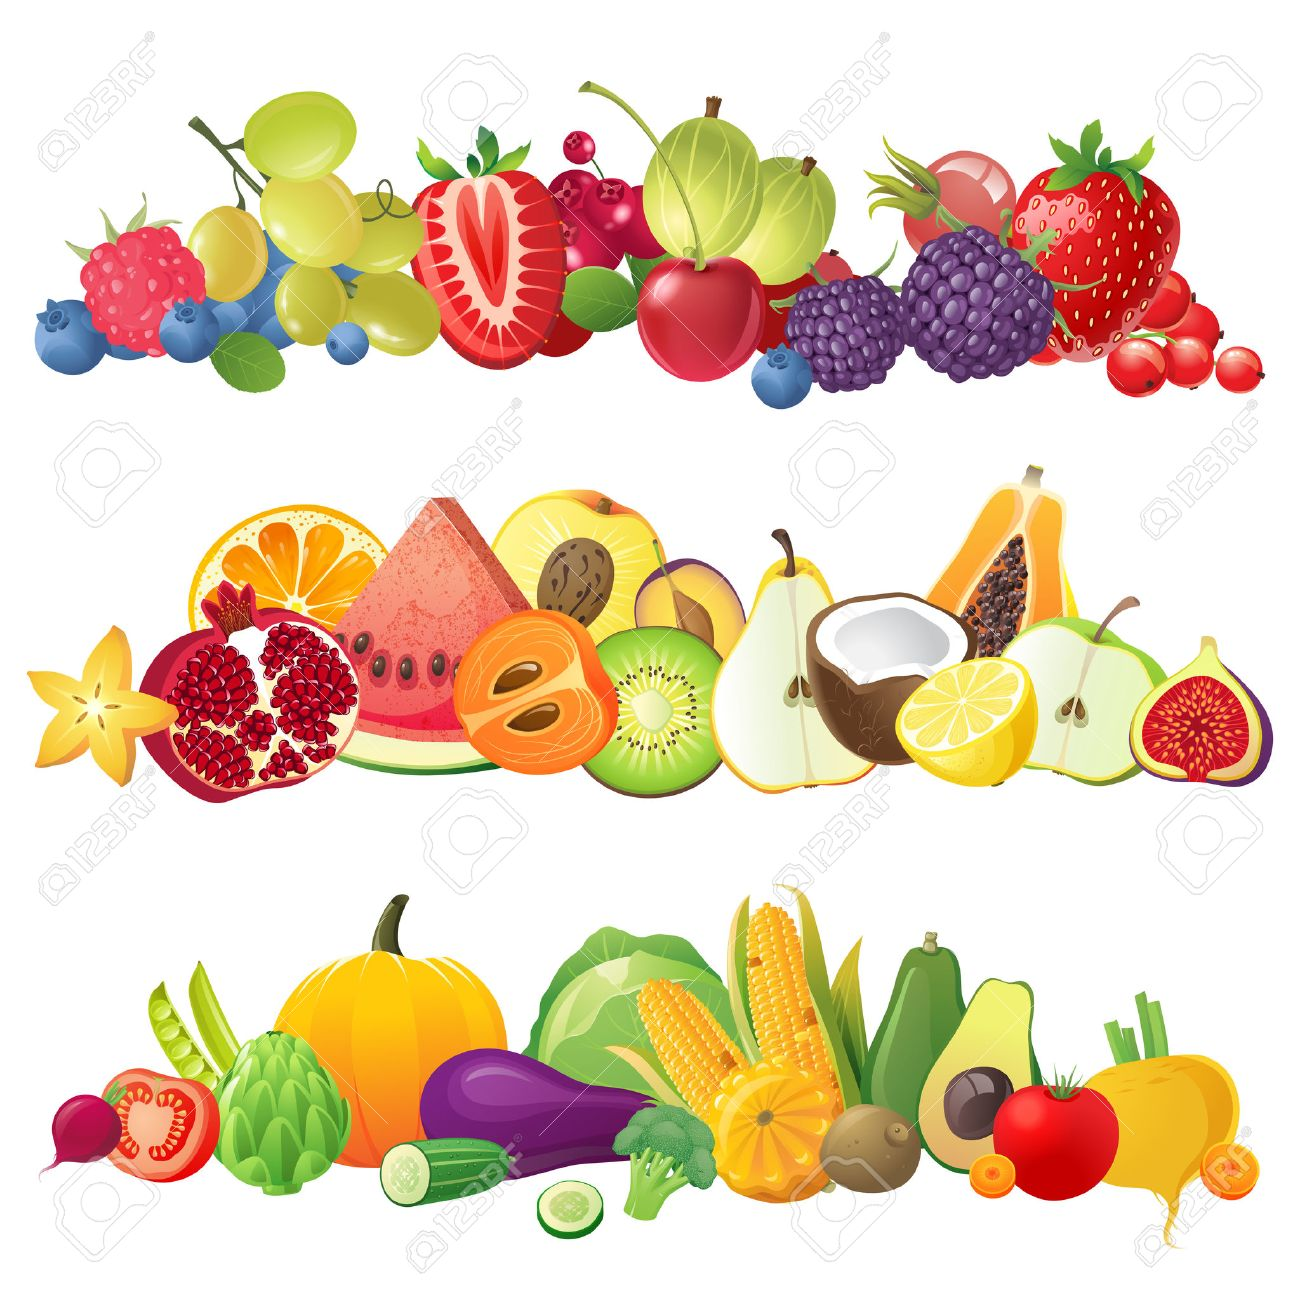 Free Pictures Of Fruits And Veggies